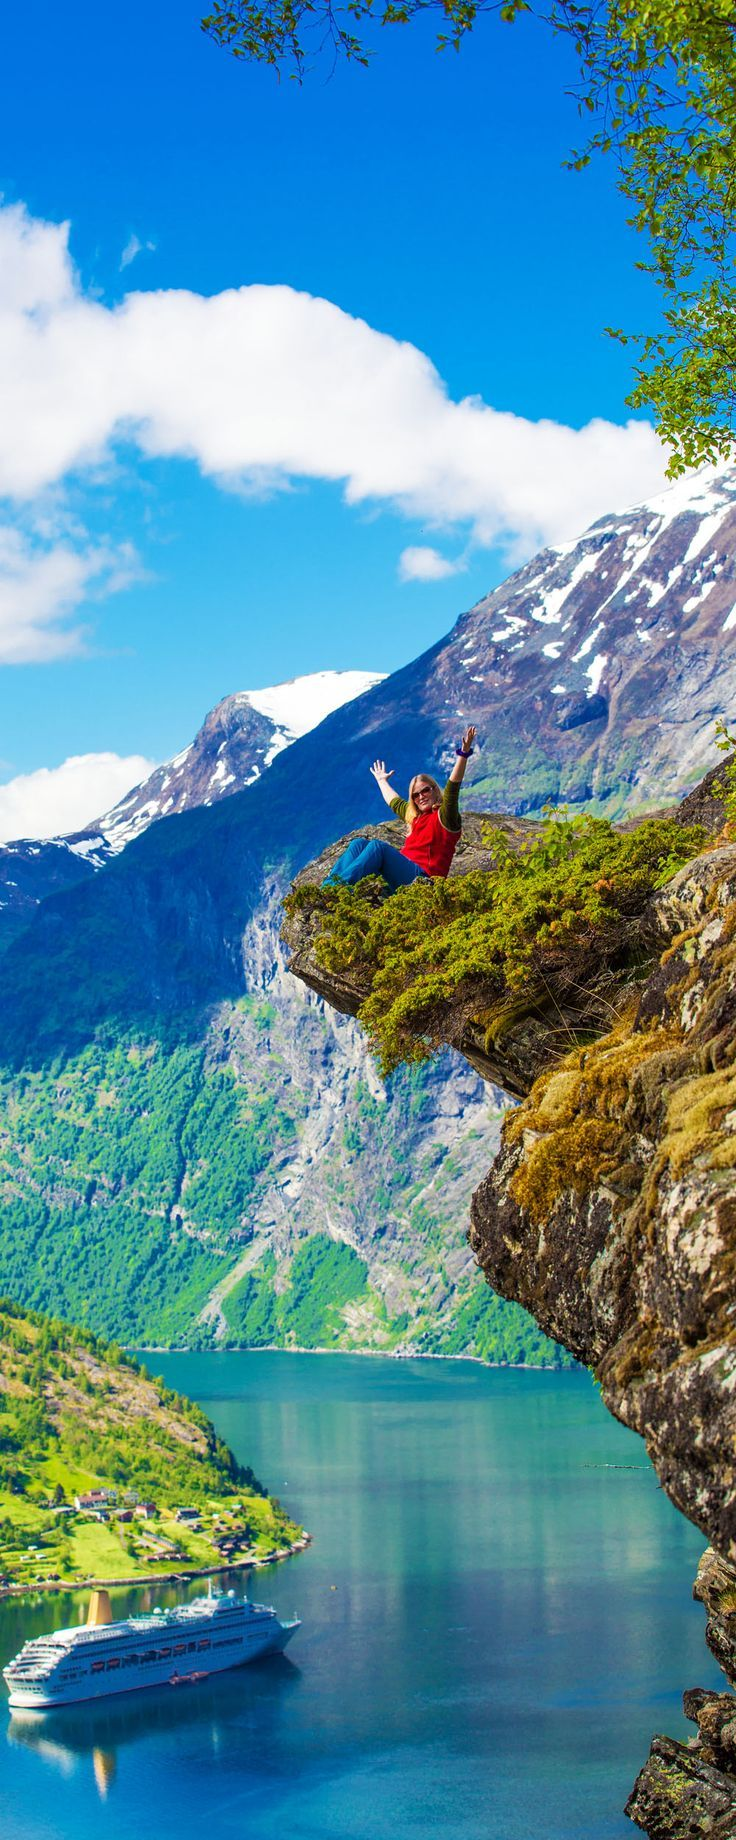 15 reasons why Norway will Rock your World | 10. Flydalsjuvet at Geranger fjord, Norway